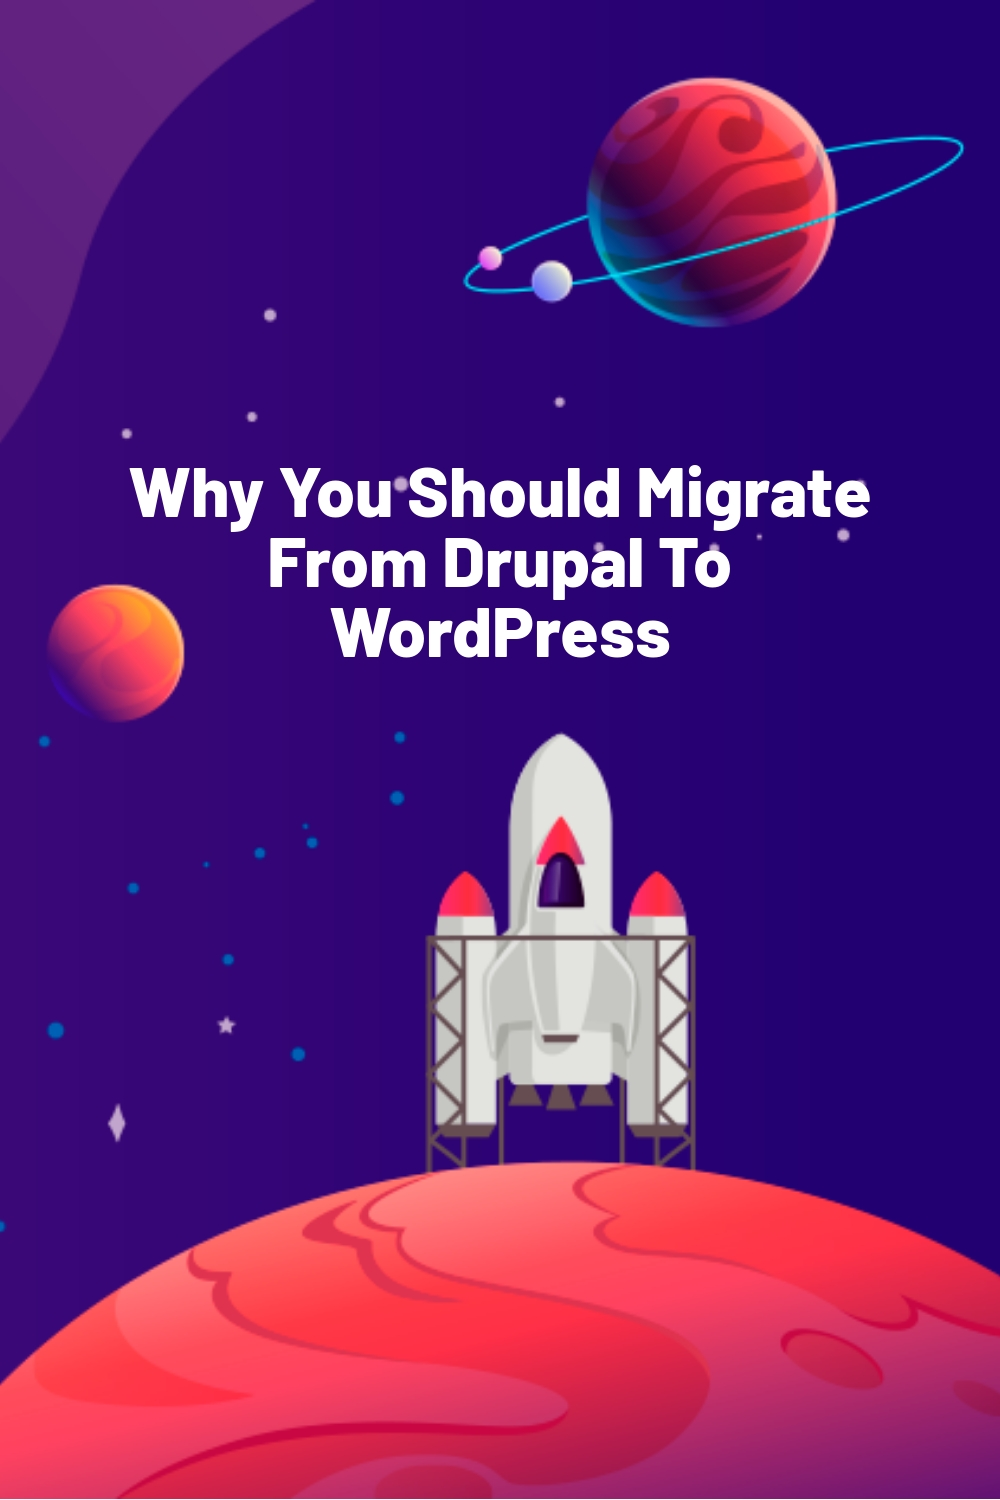 Why You Should Migrate From Drupal To WordPress